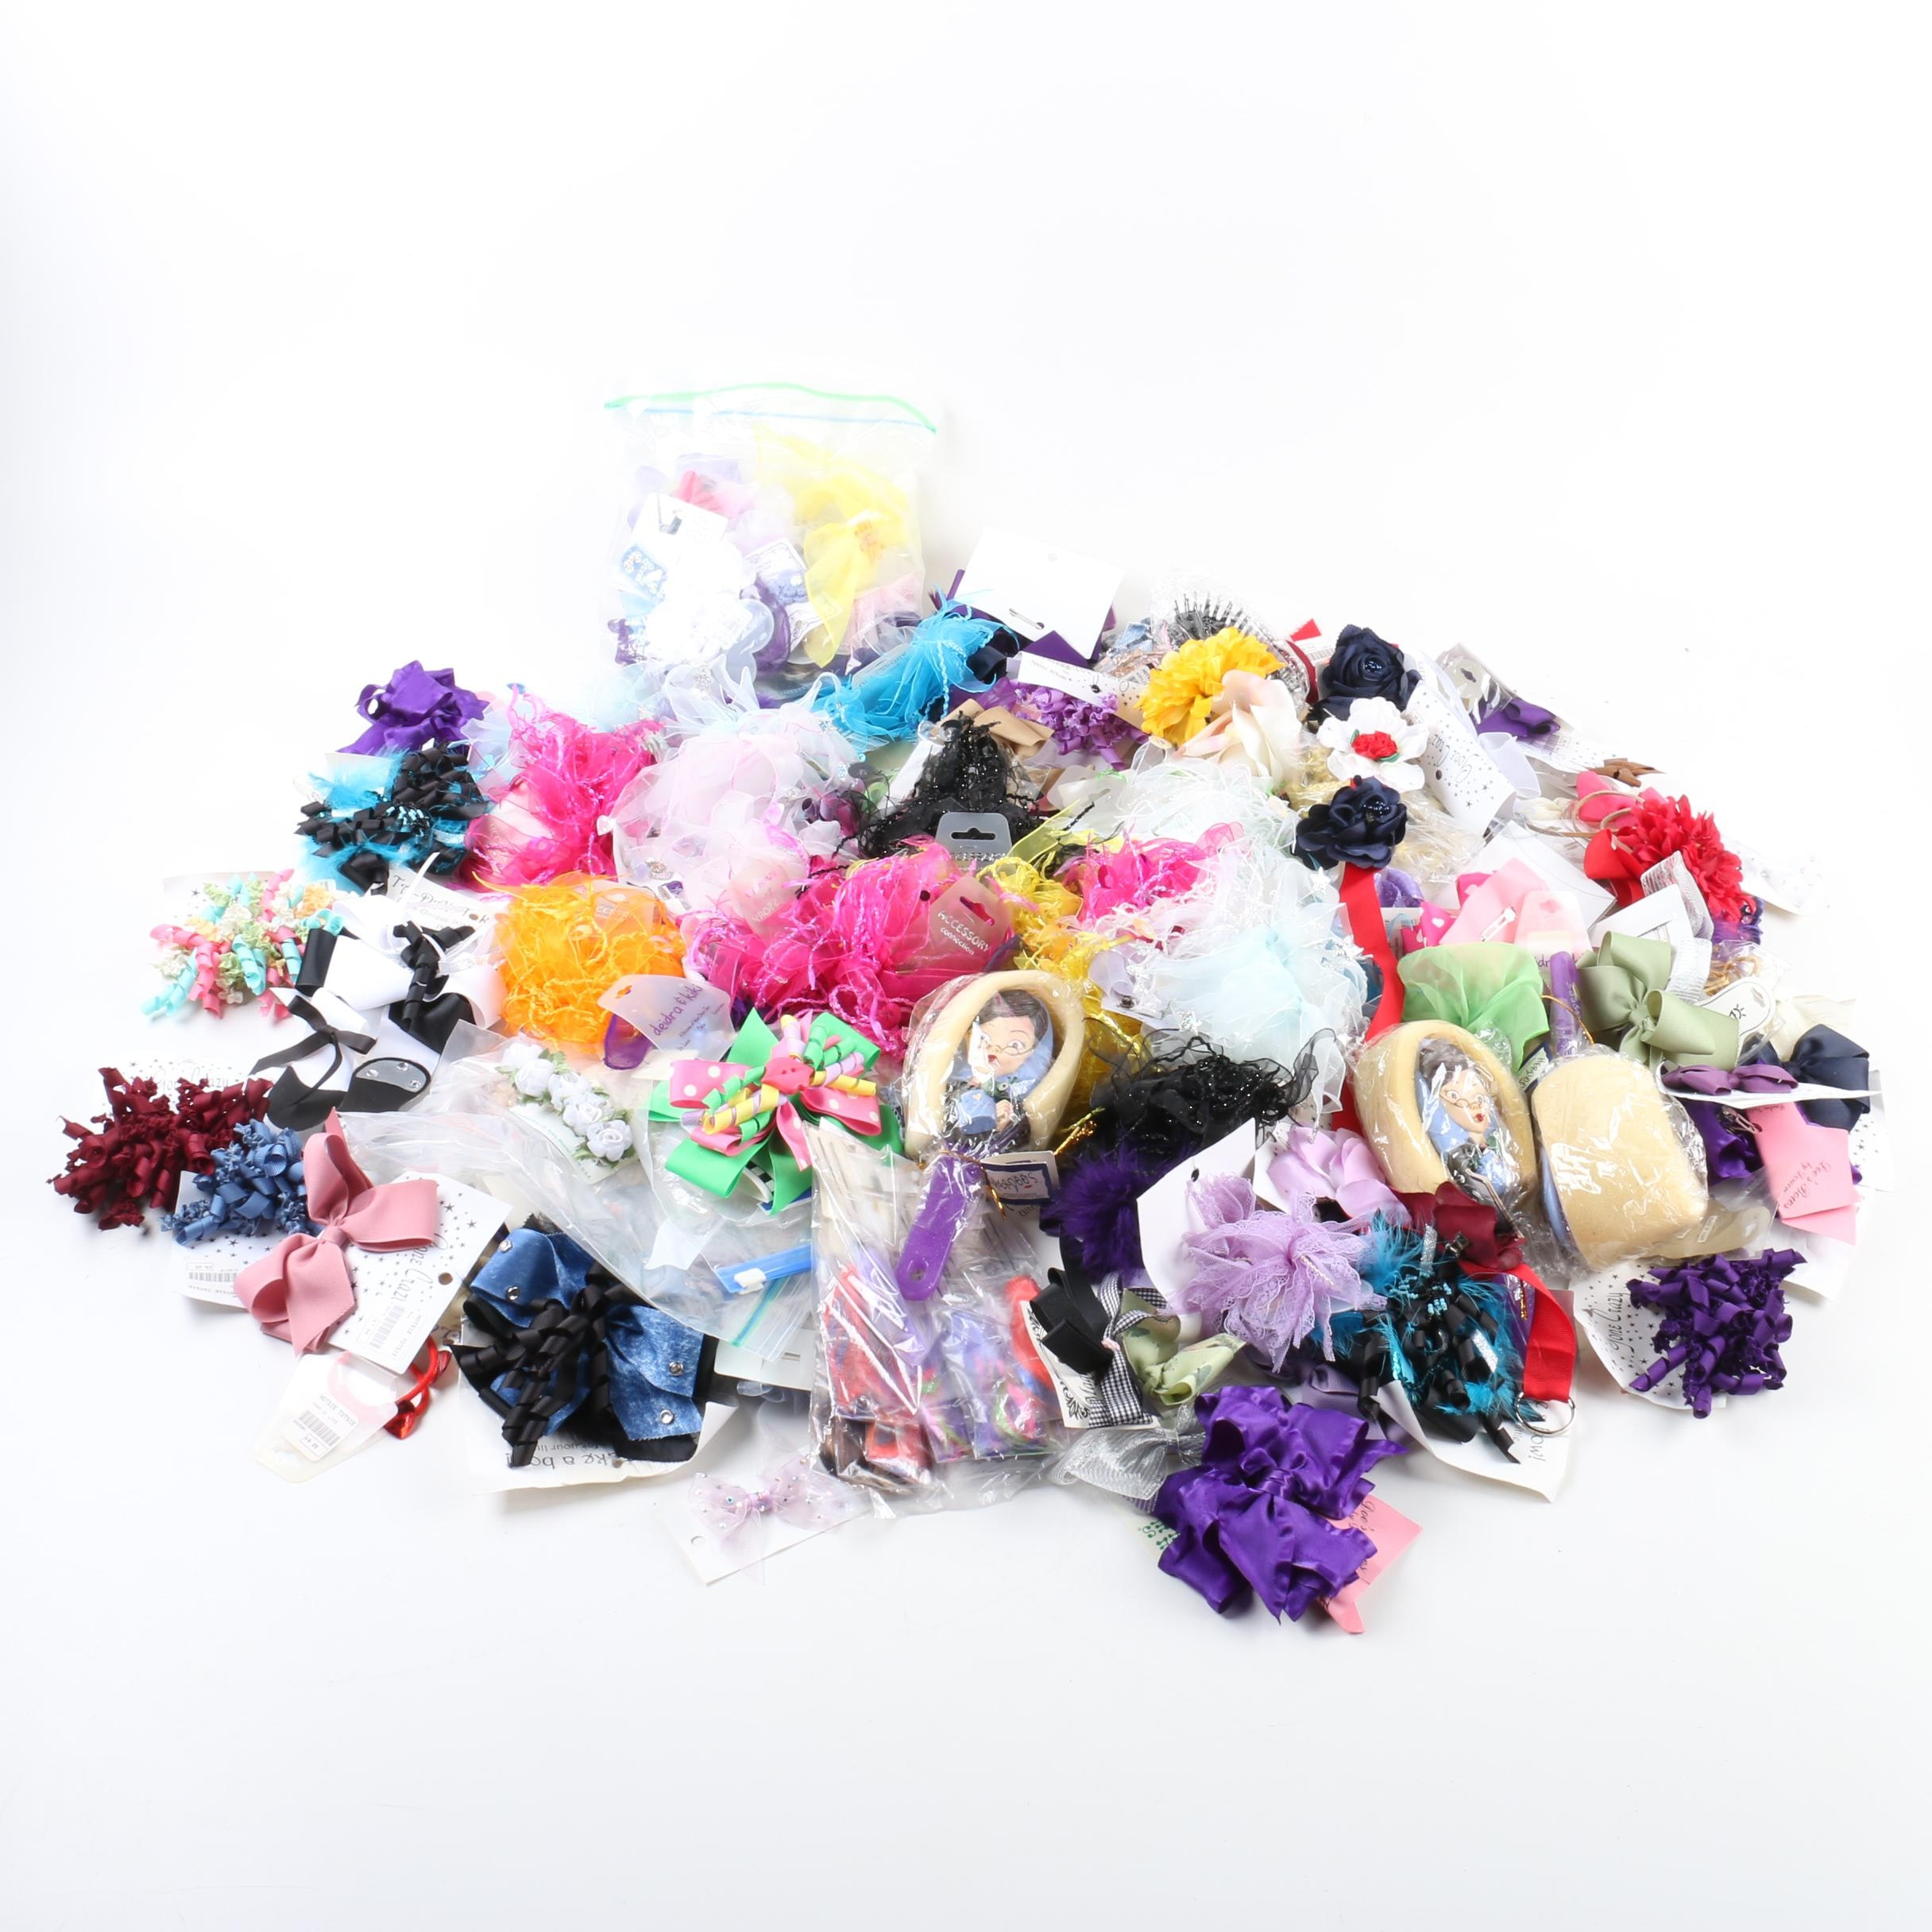 Assortment of Hair Accessories Including Gone Crazy